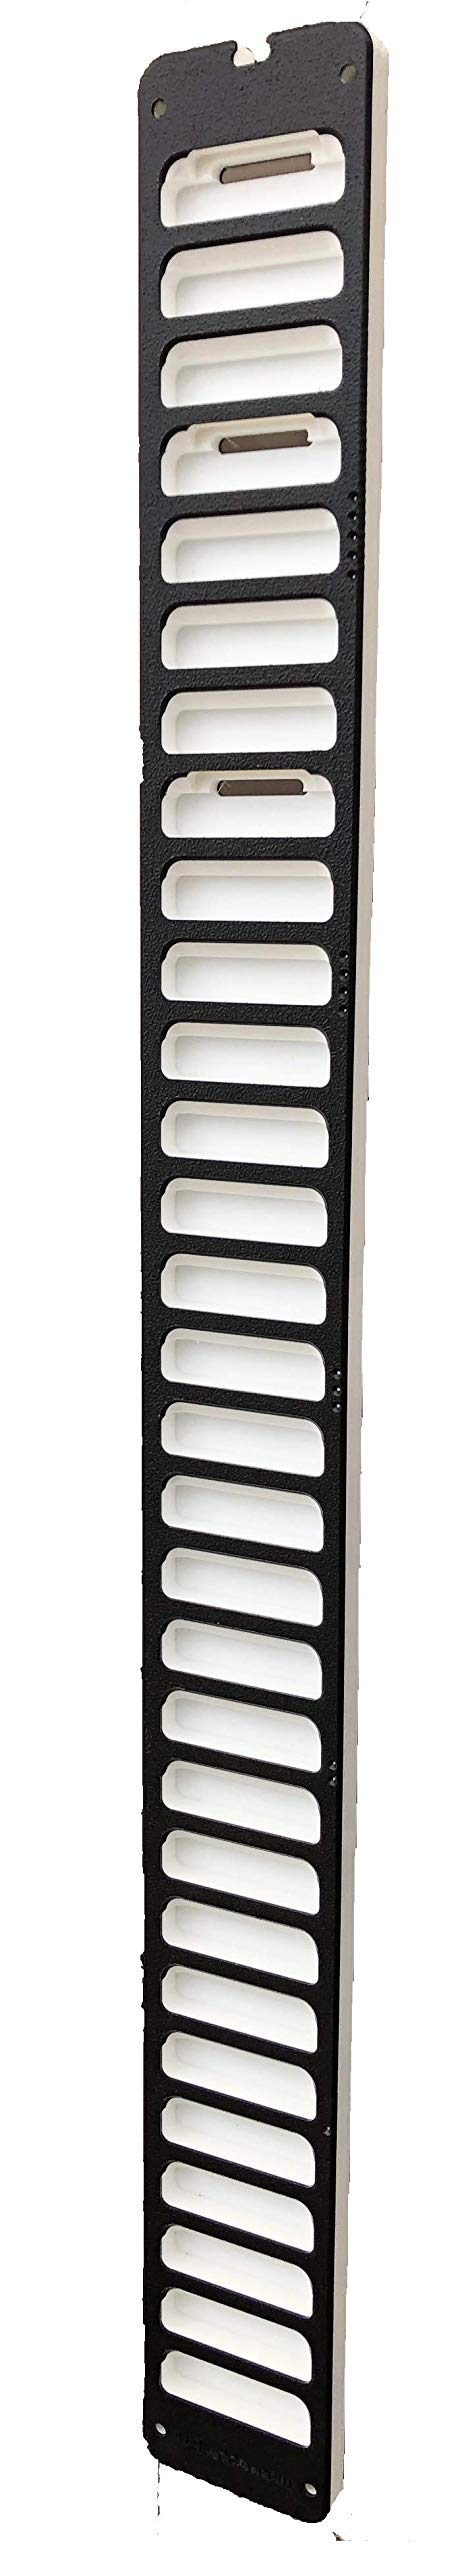 UELadder: The ONLY Shoulder Finger Ladder with an Over-The-Door Mount That Gives A Proper Stretch Anywhere (Black & White, 1)